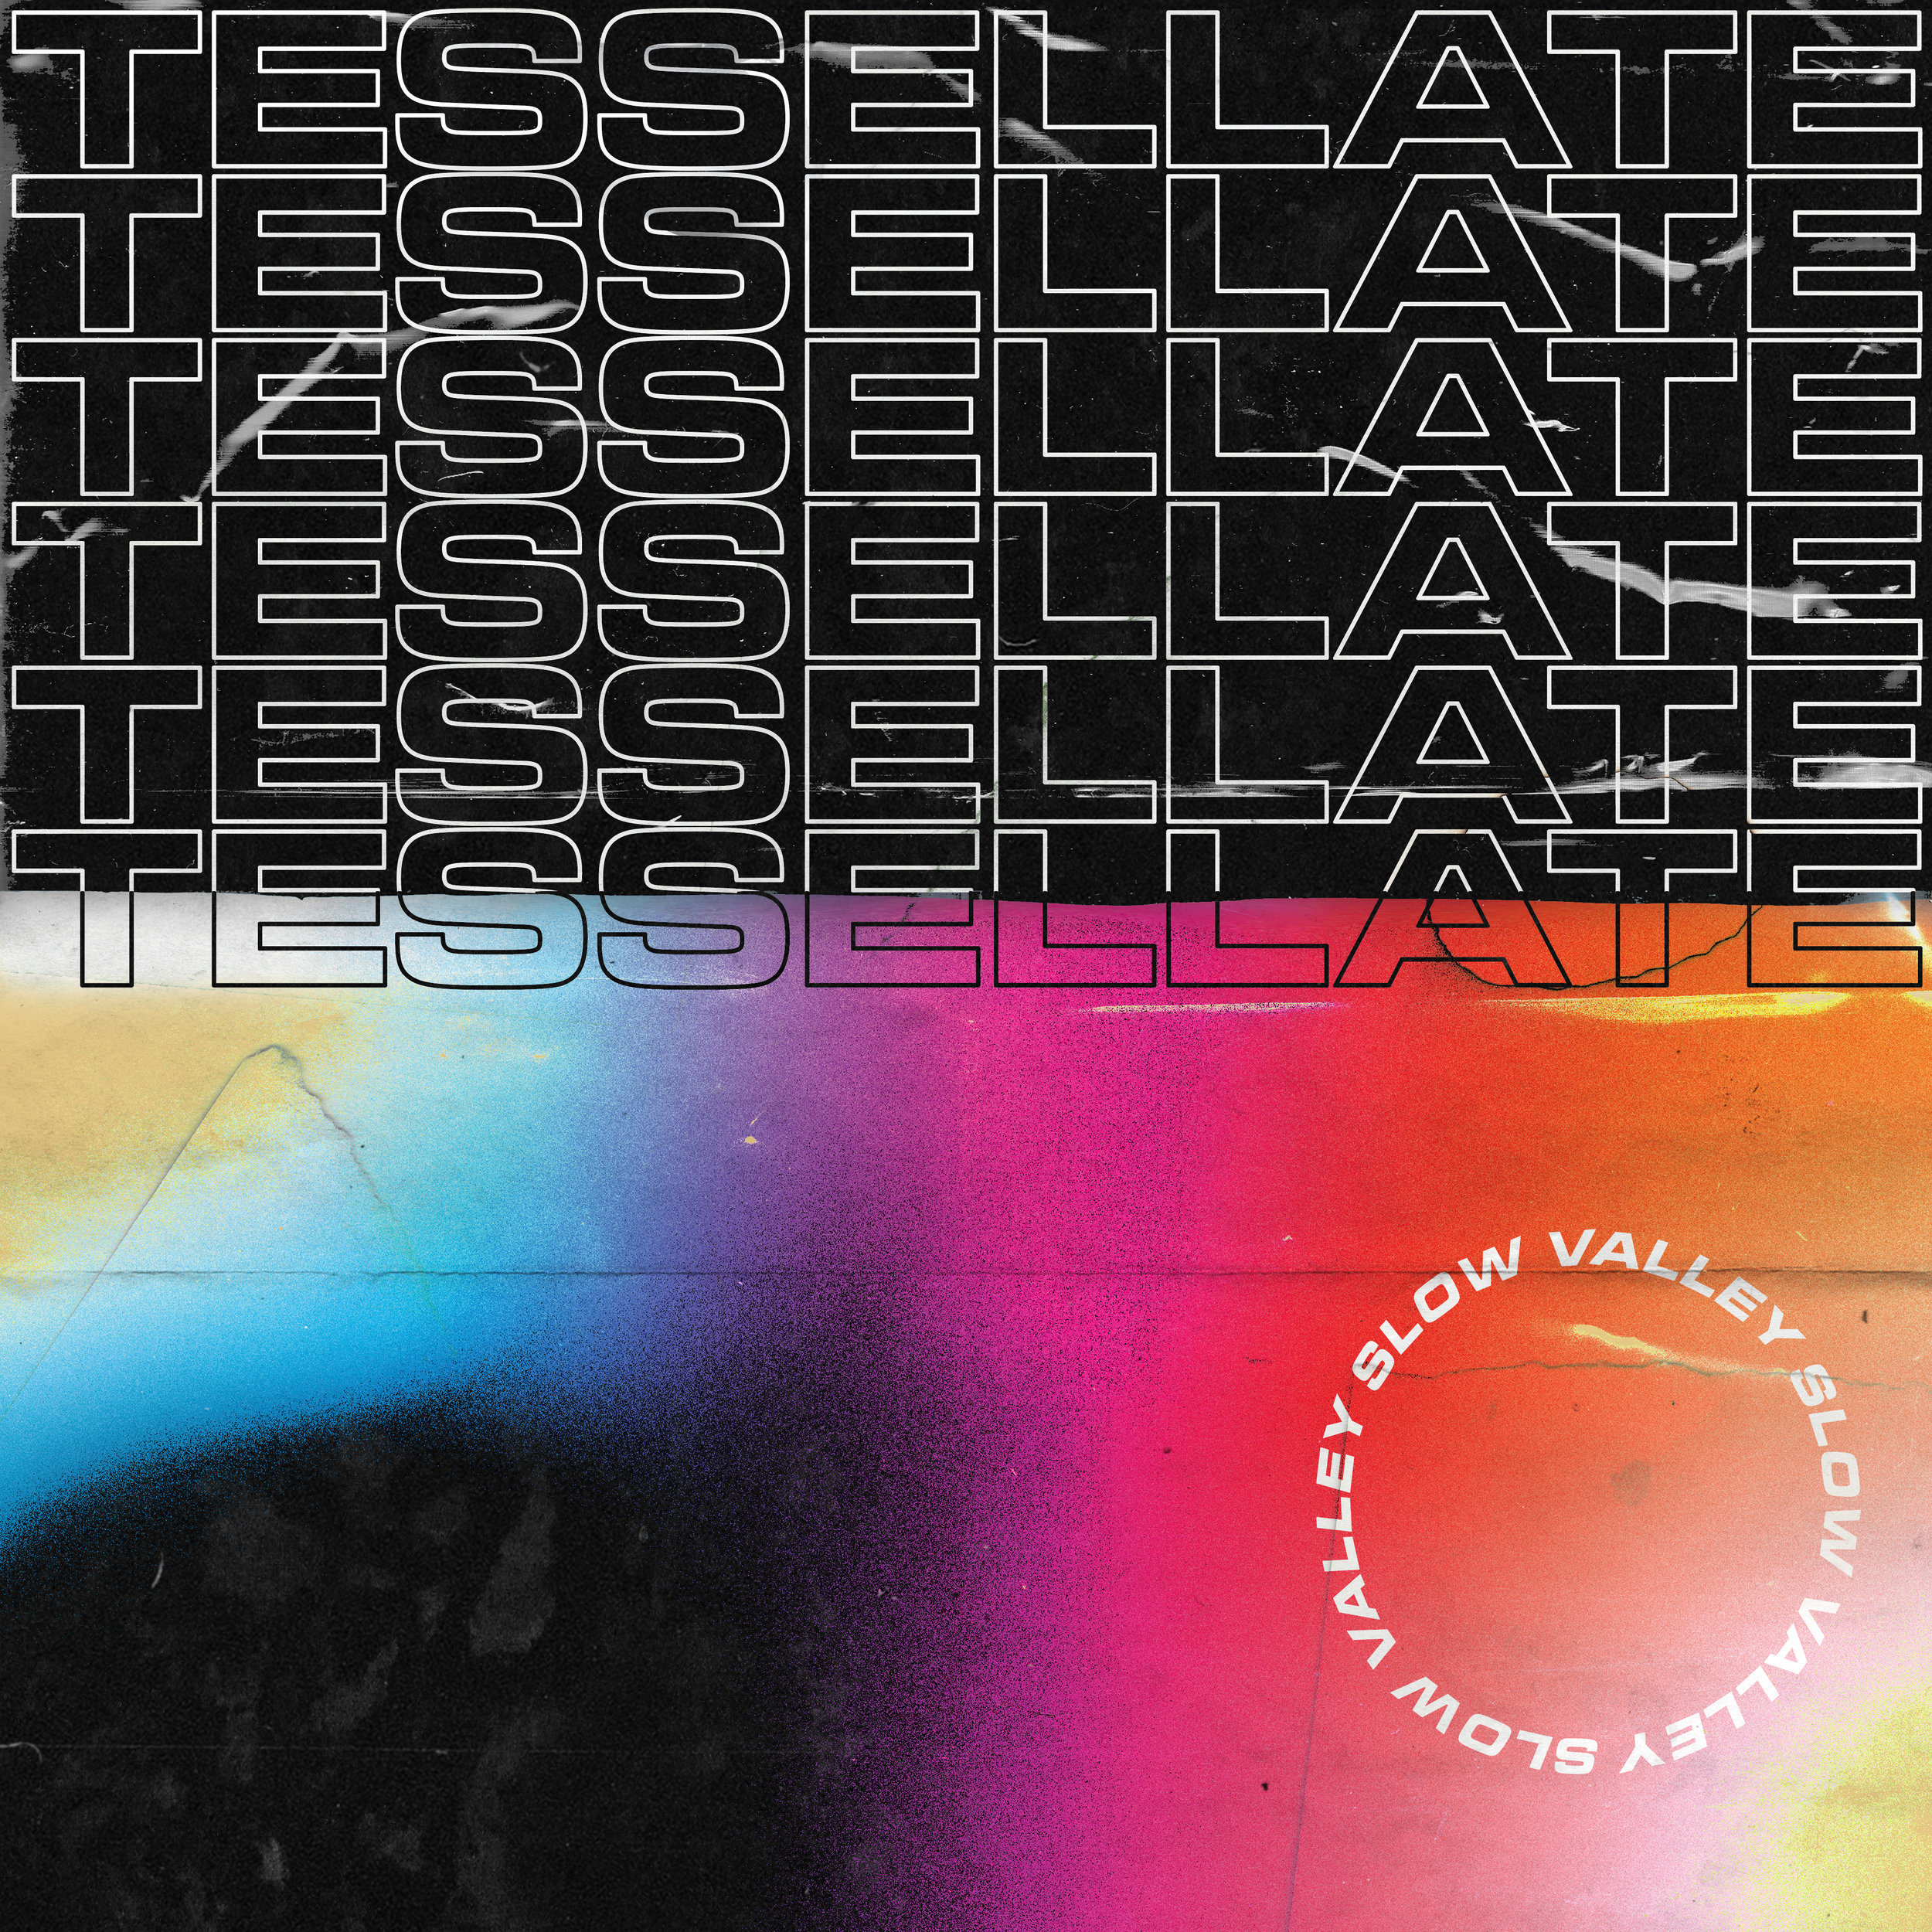 Slow Valley - Tessellate EP